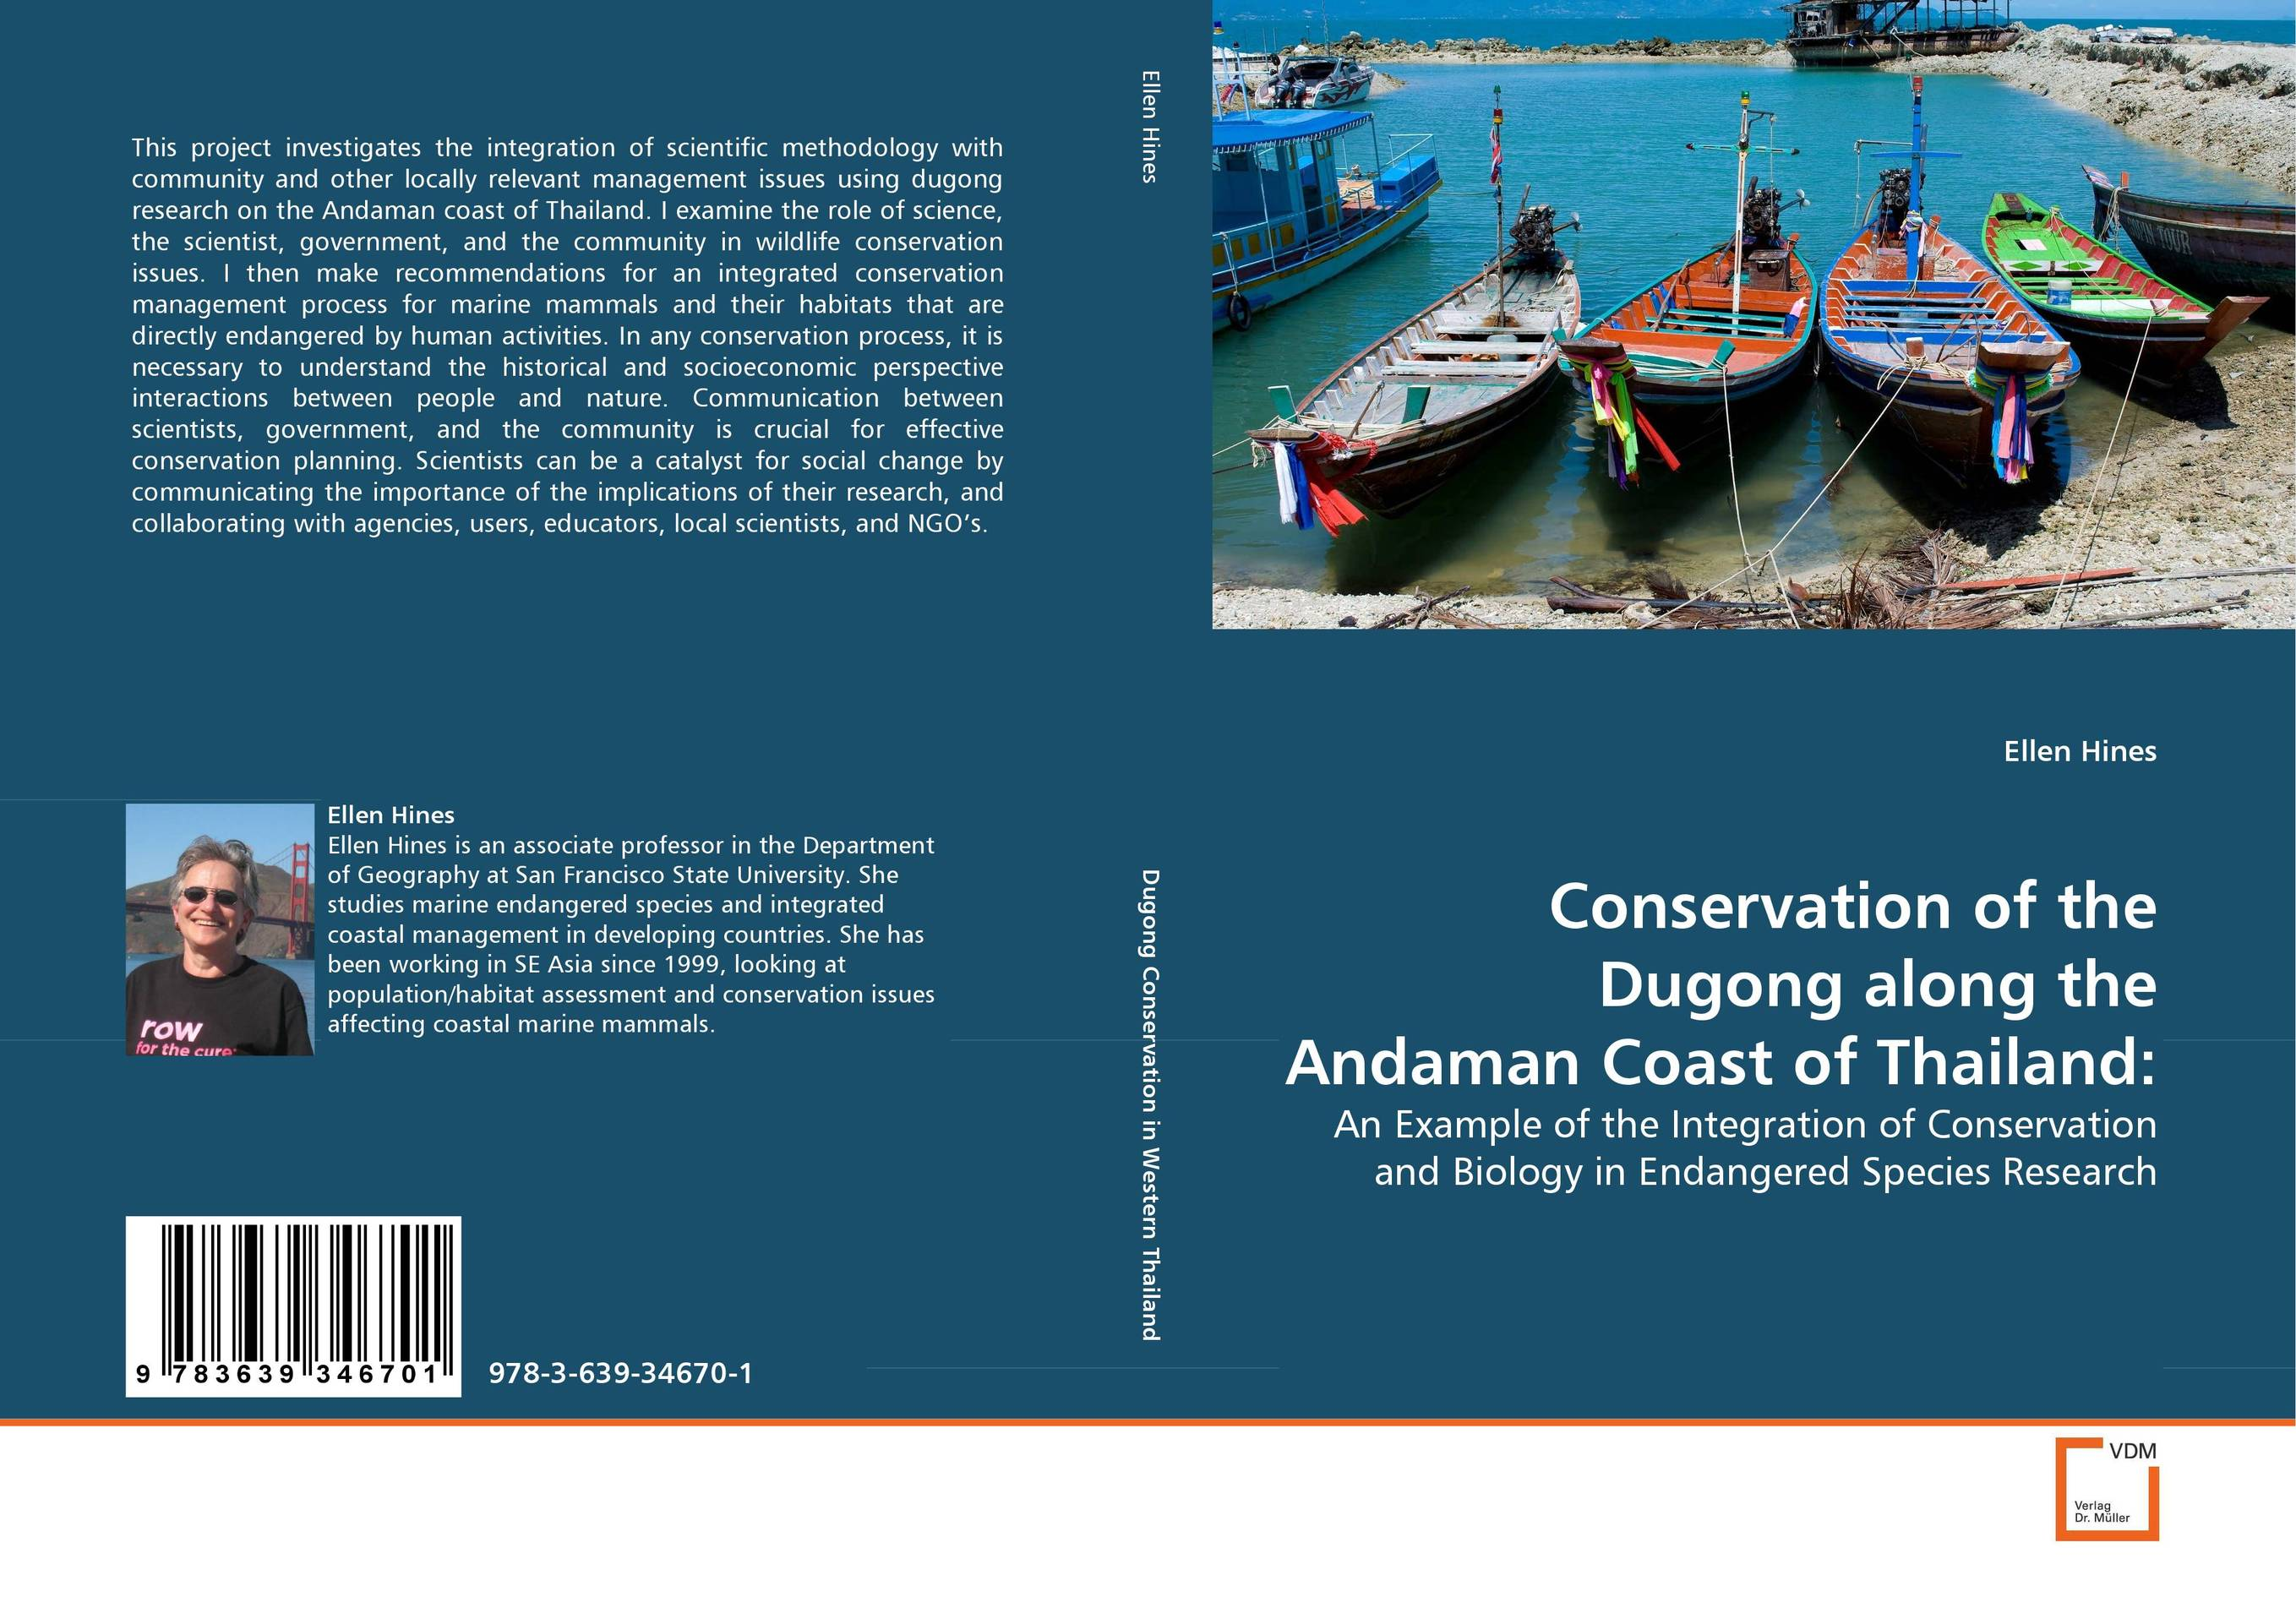 Conservation of the Dugong along the Andaman Coast of Thailand: